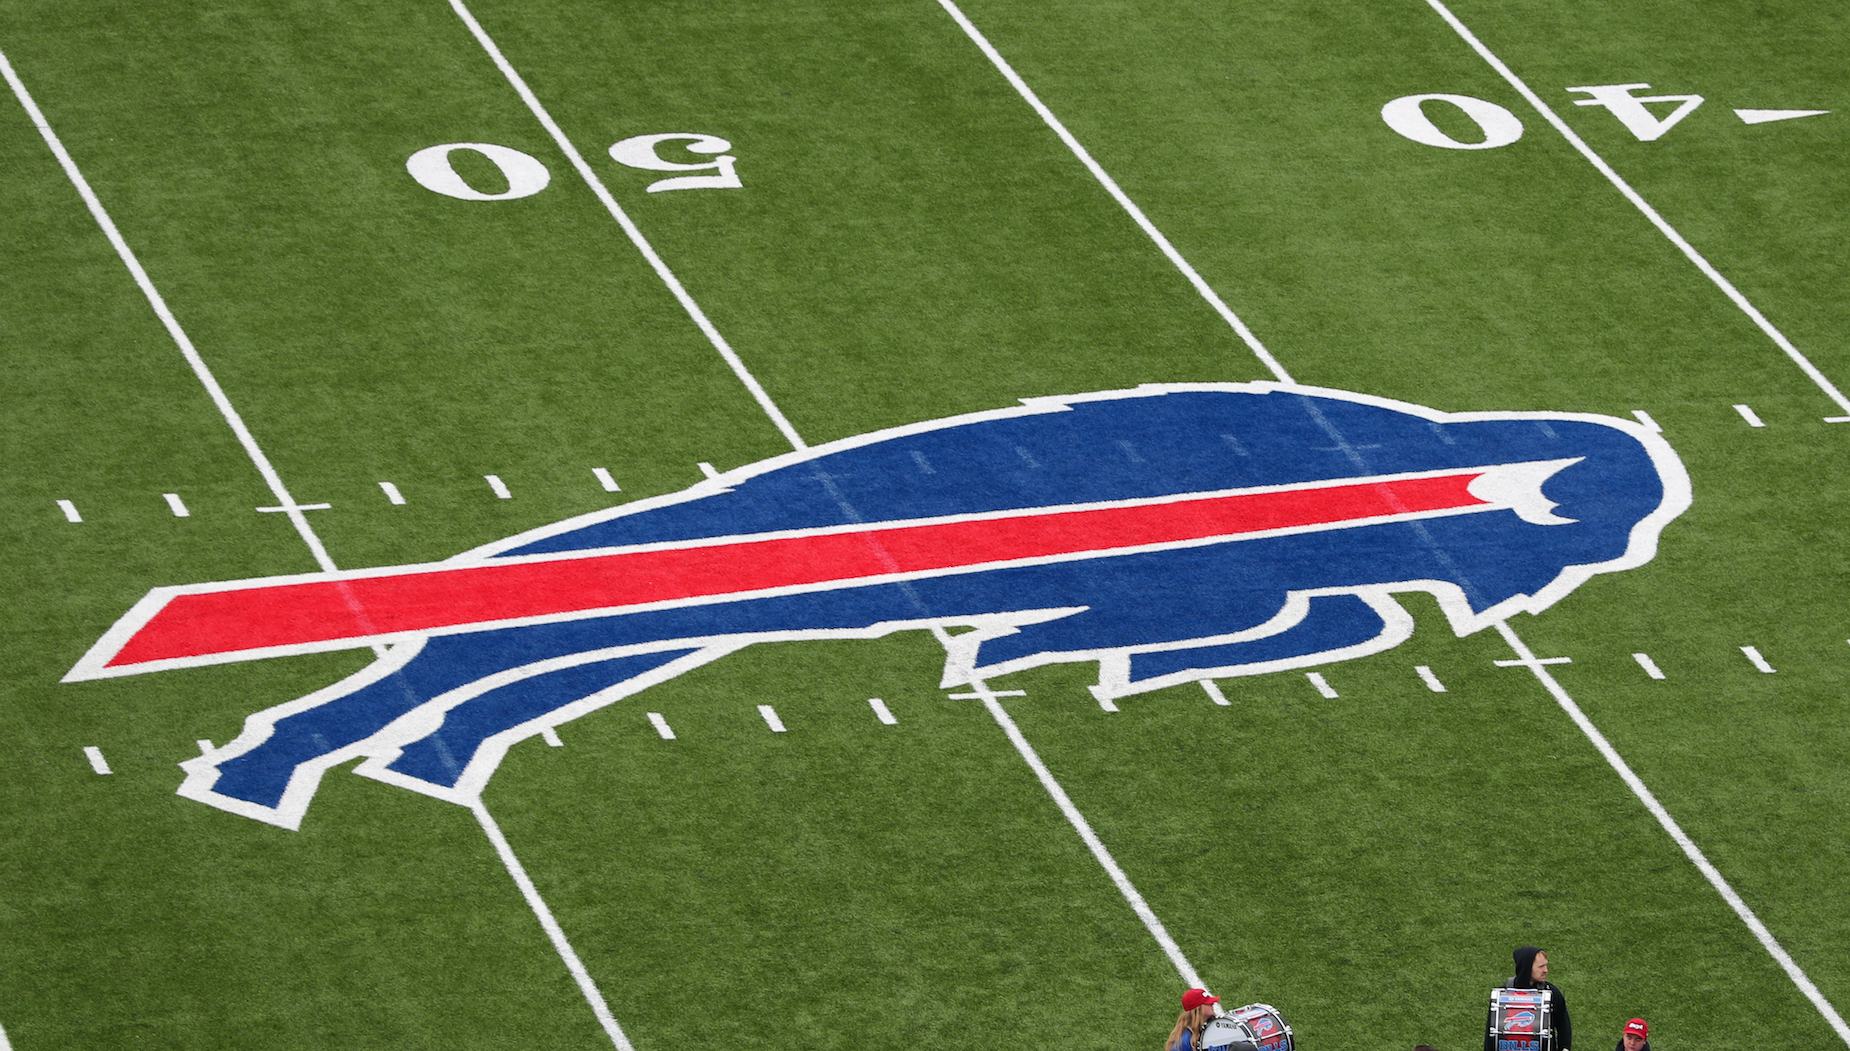 The Buffalo Bills logo painted on what was then called New Era Field.